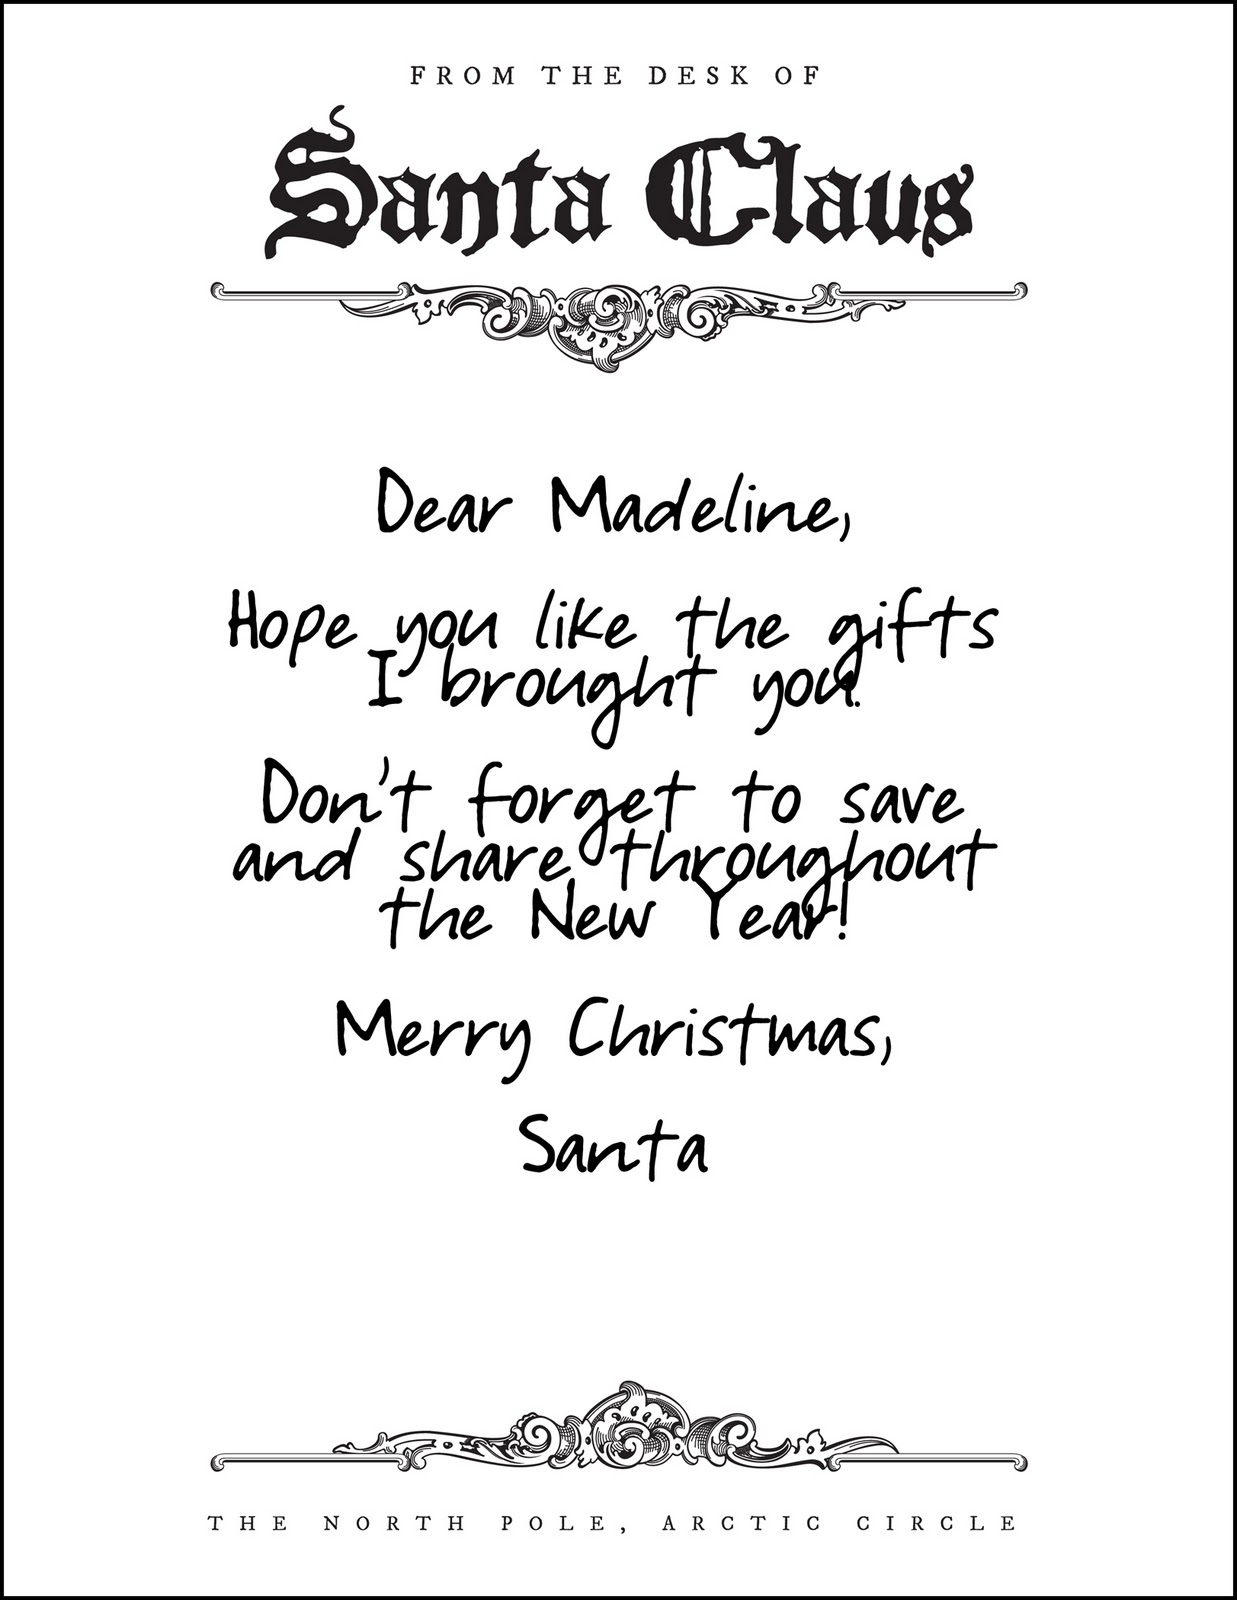 Santa Claus Letterhead Santa brought james and